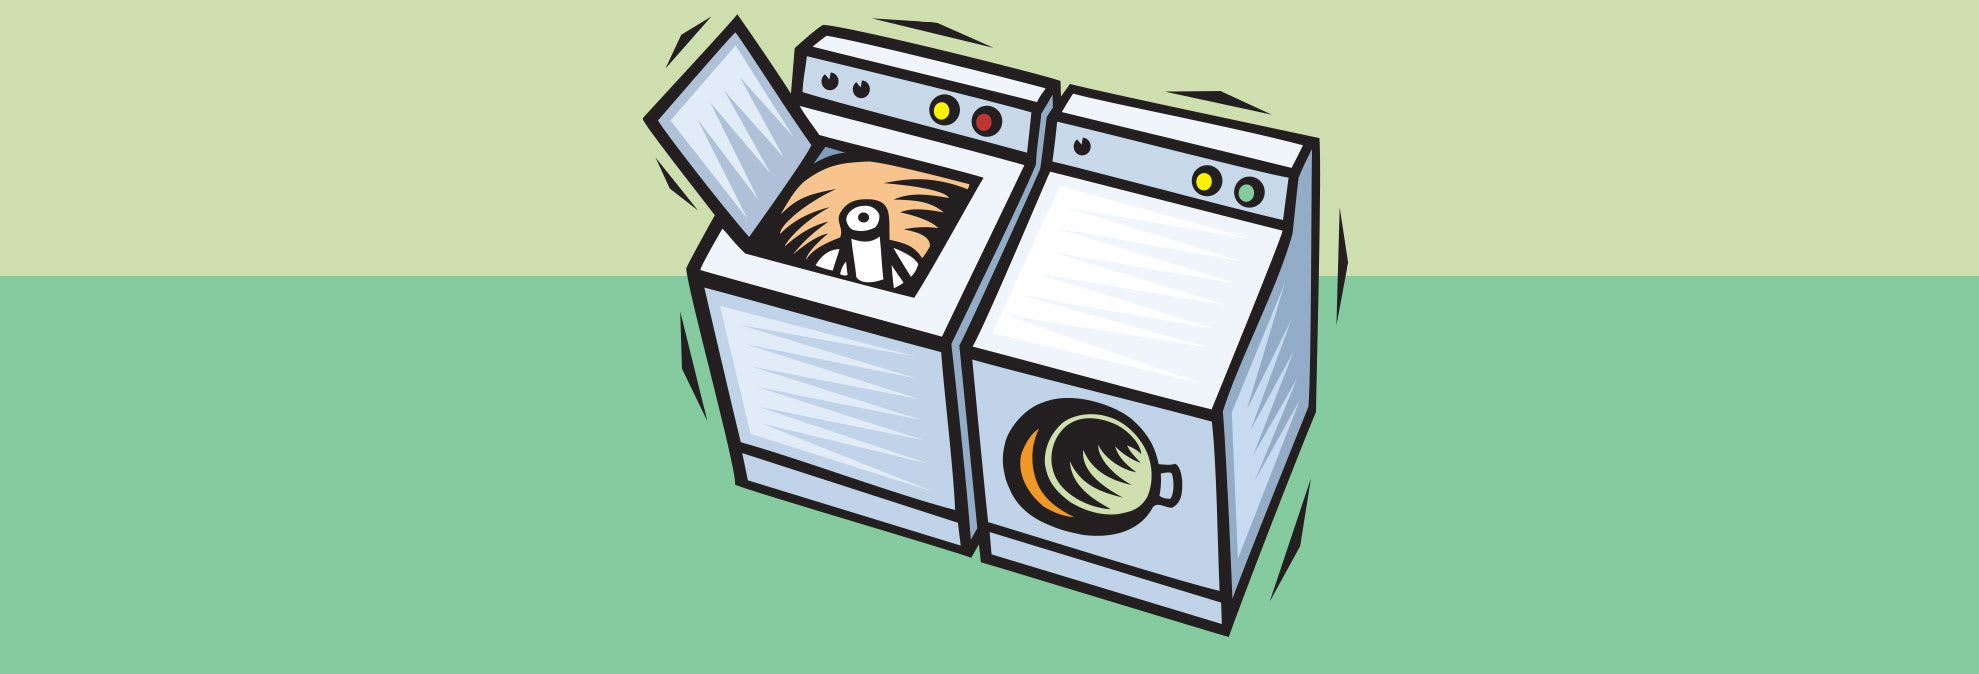 How To Make Your Washer And Dryer Last Longer Washer Dryer New